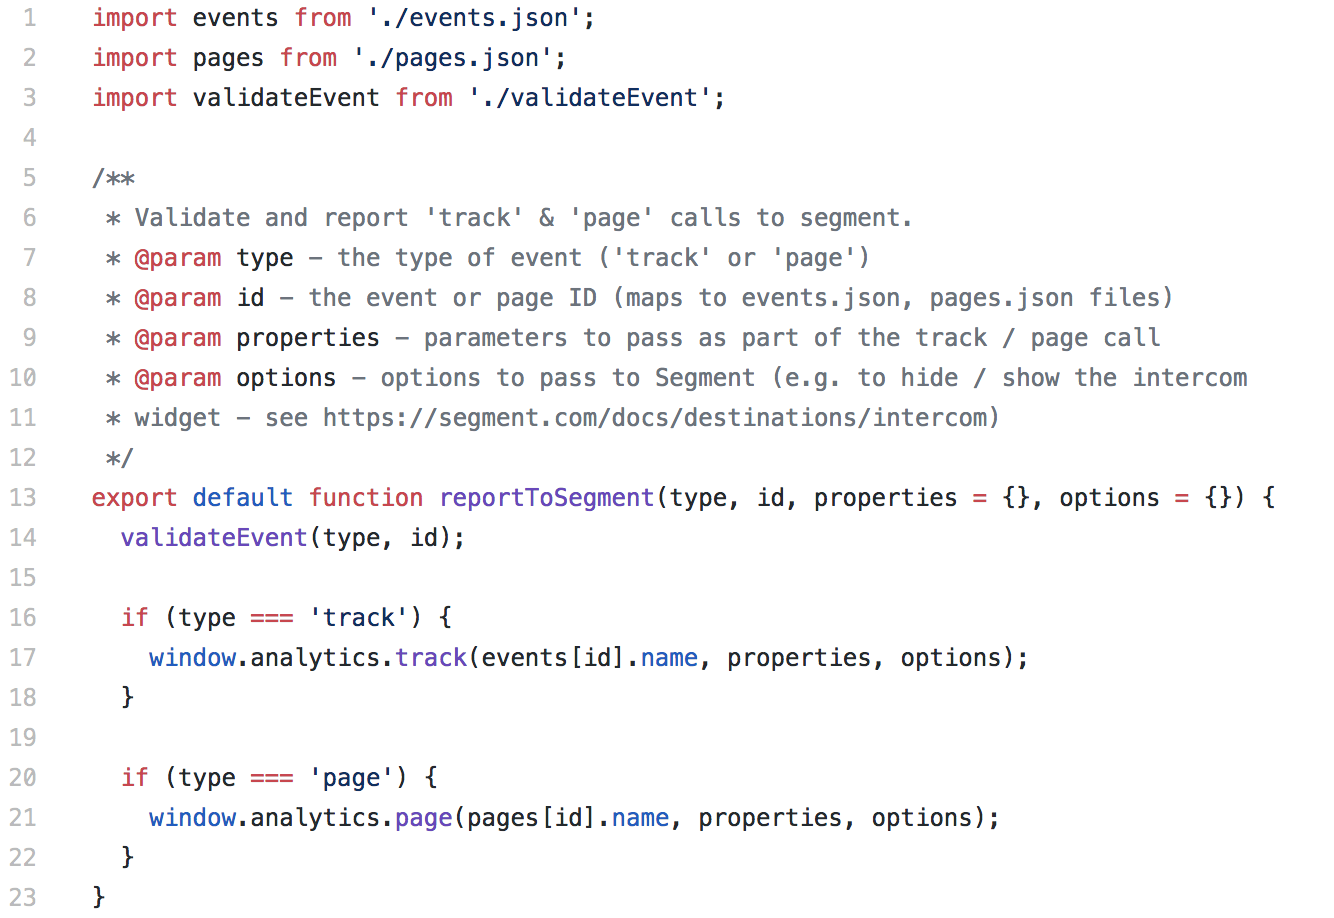 Code snippet of reportToSegment function